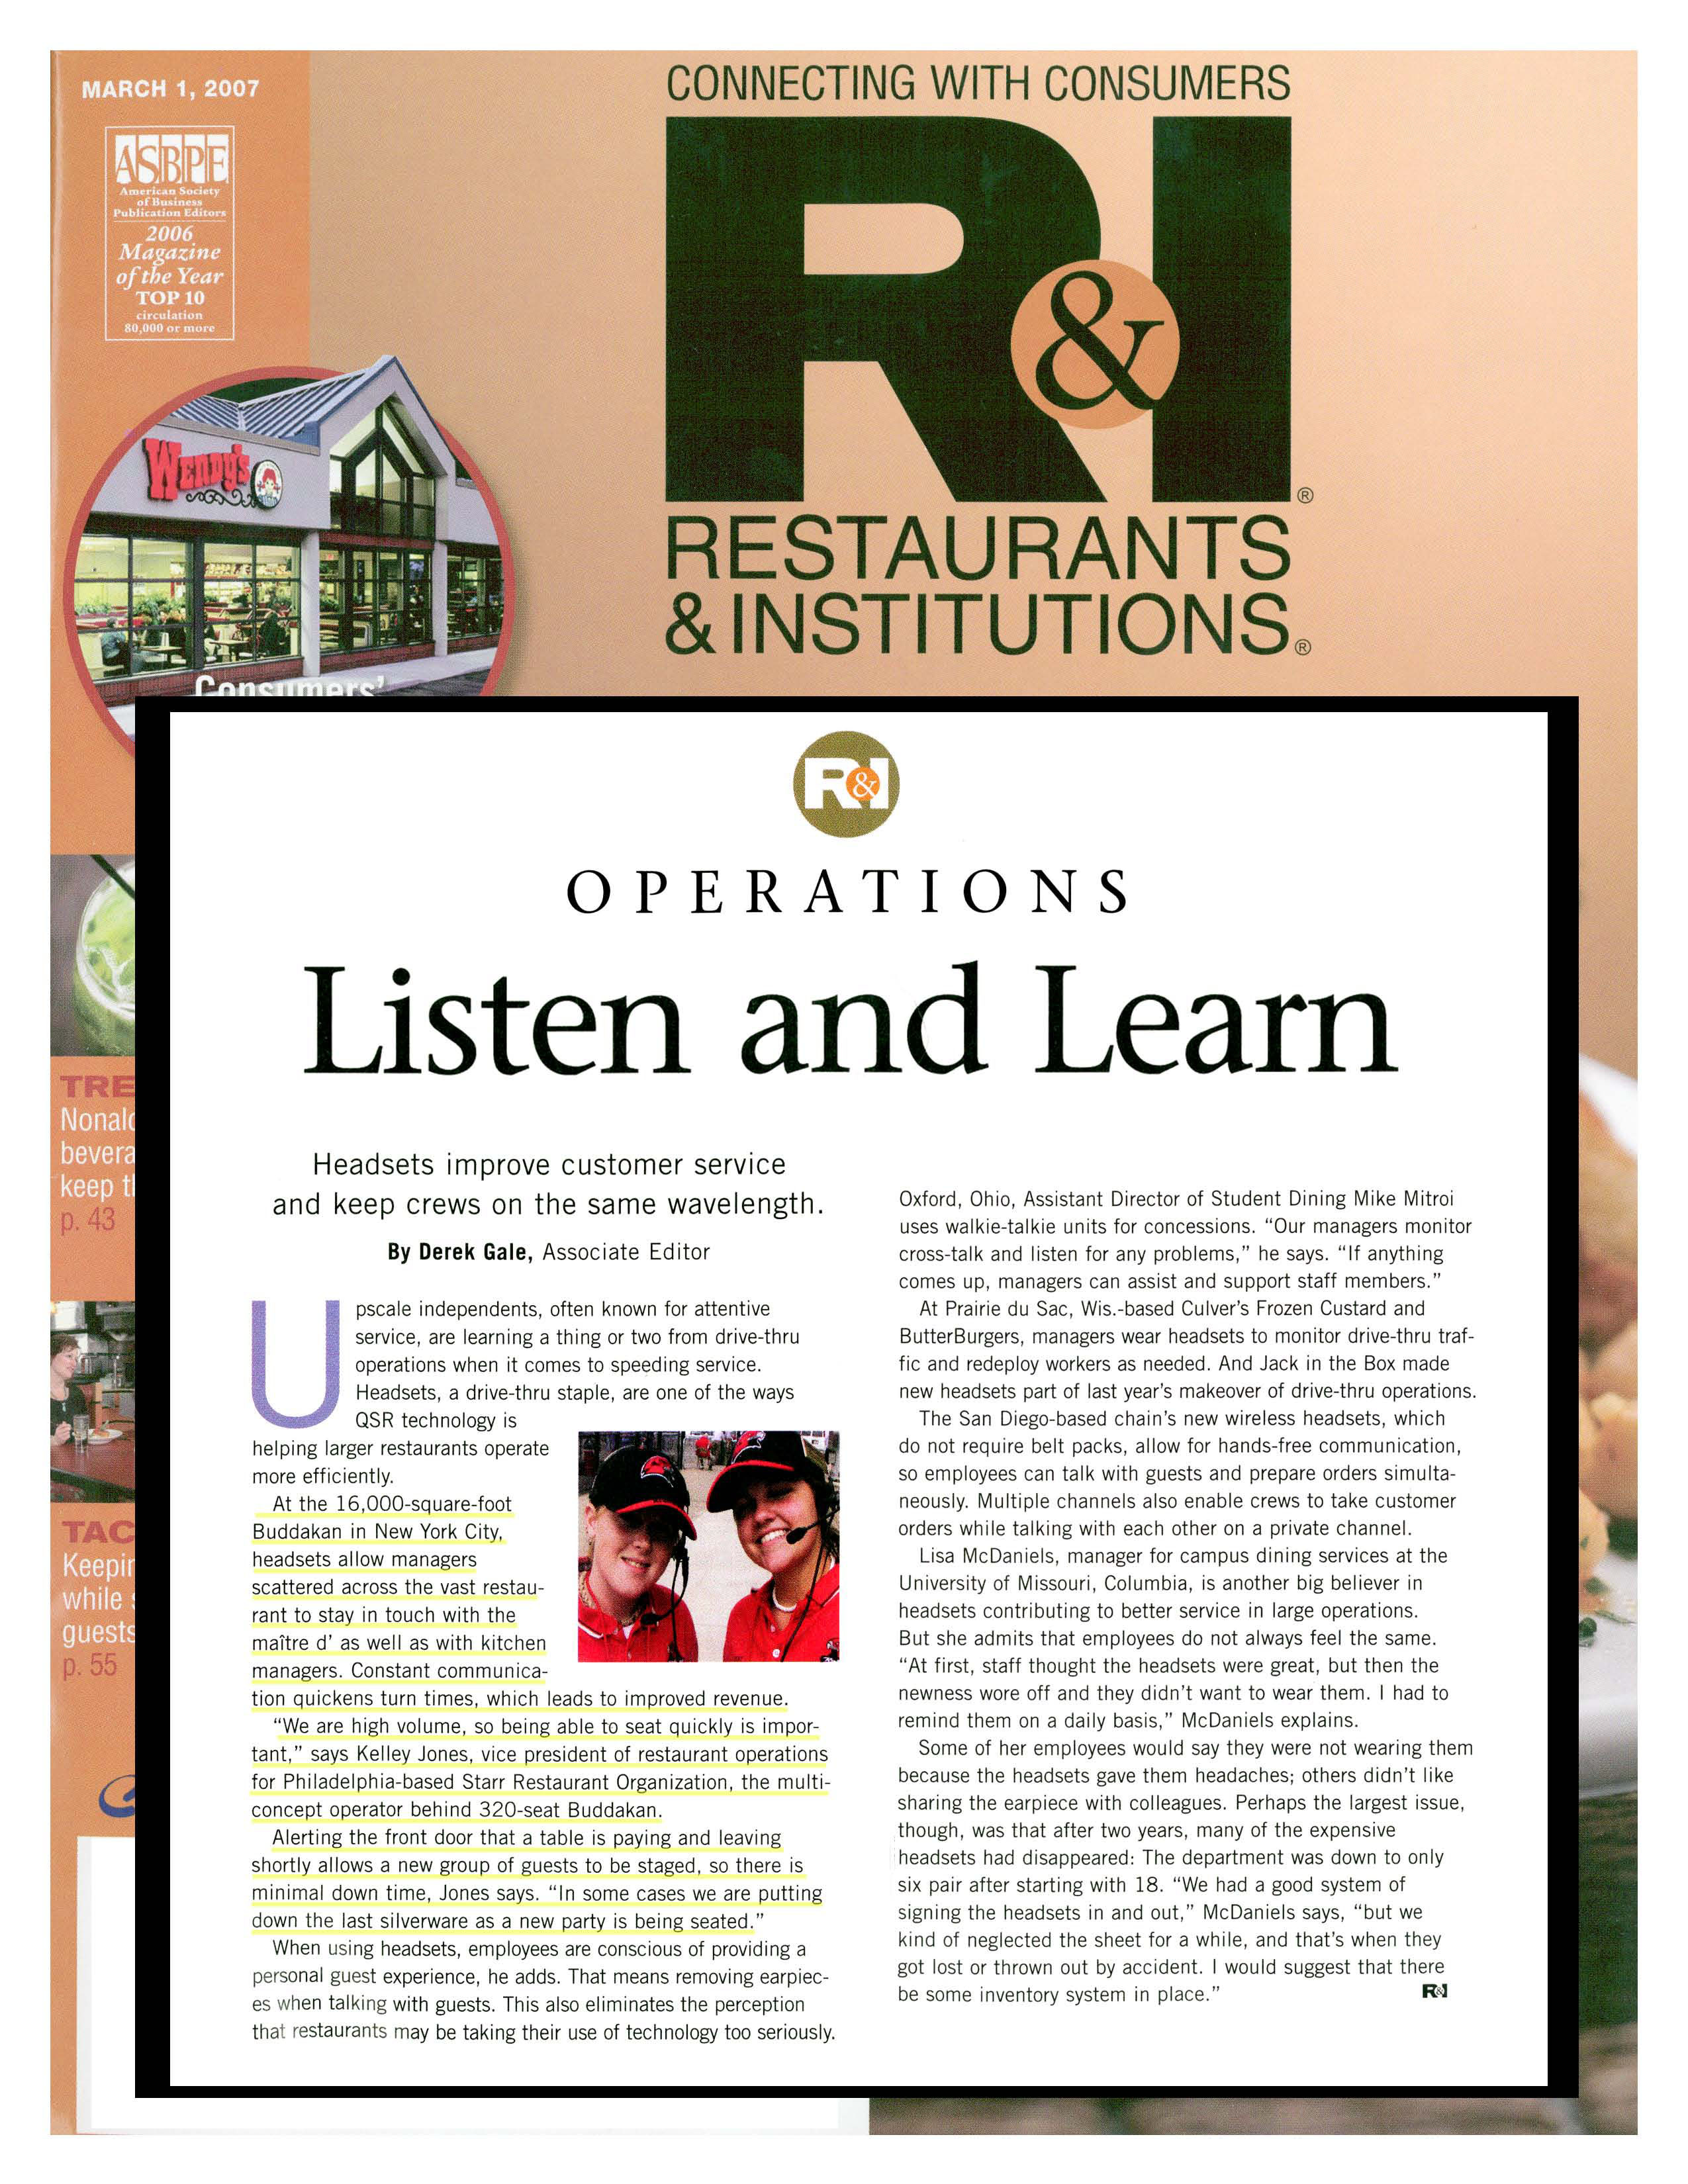 Restaurants and Institutions